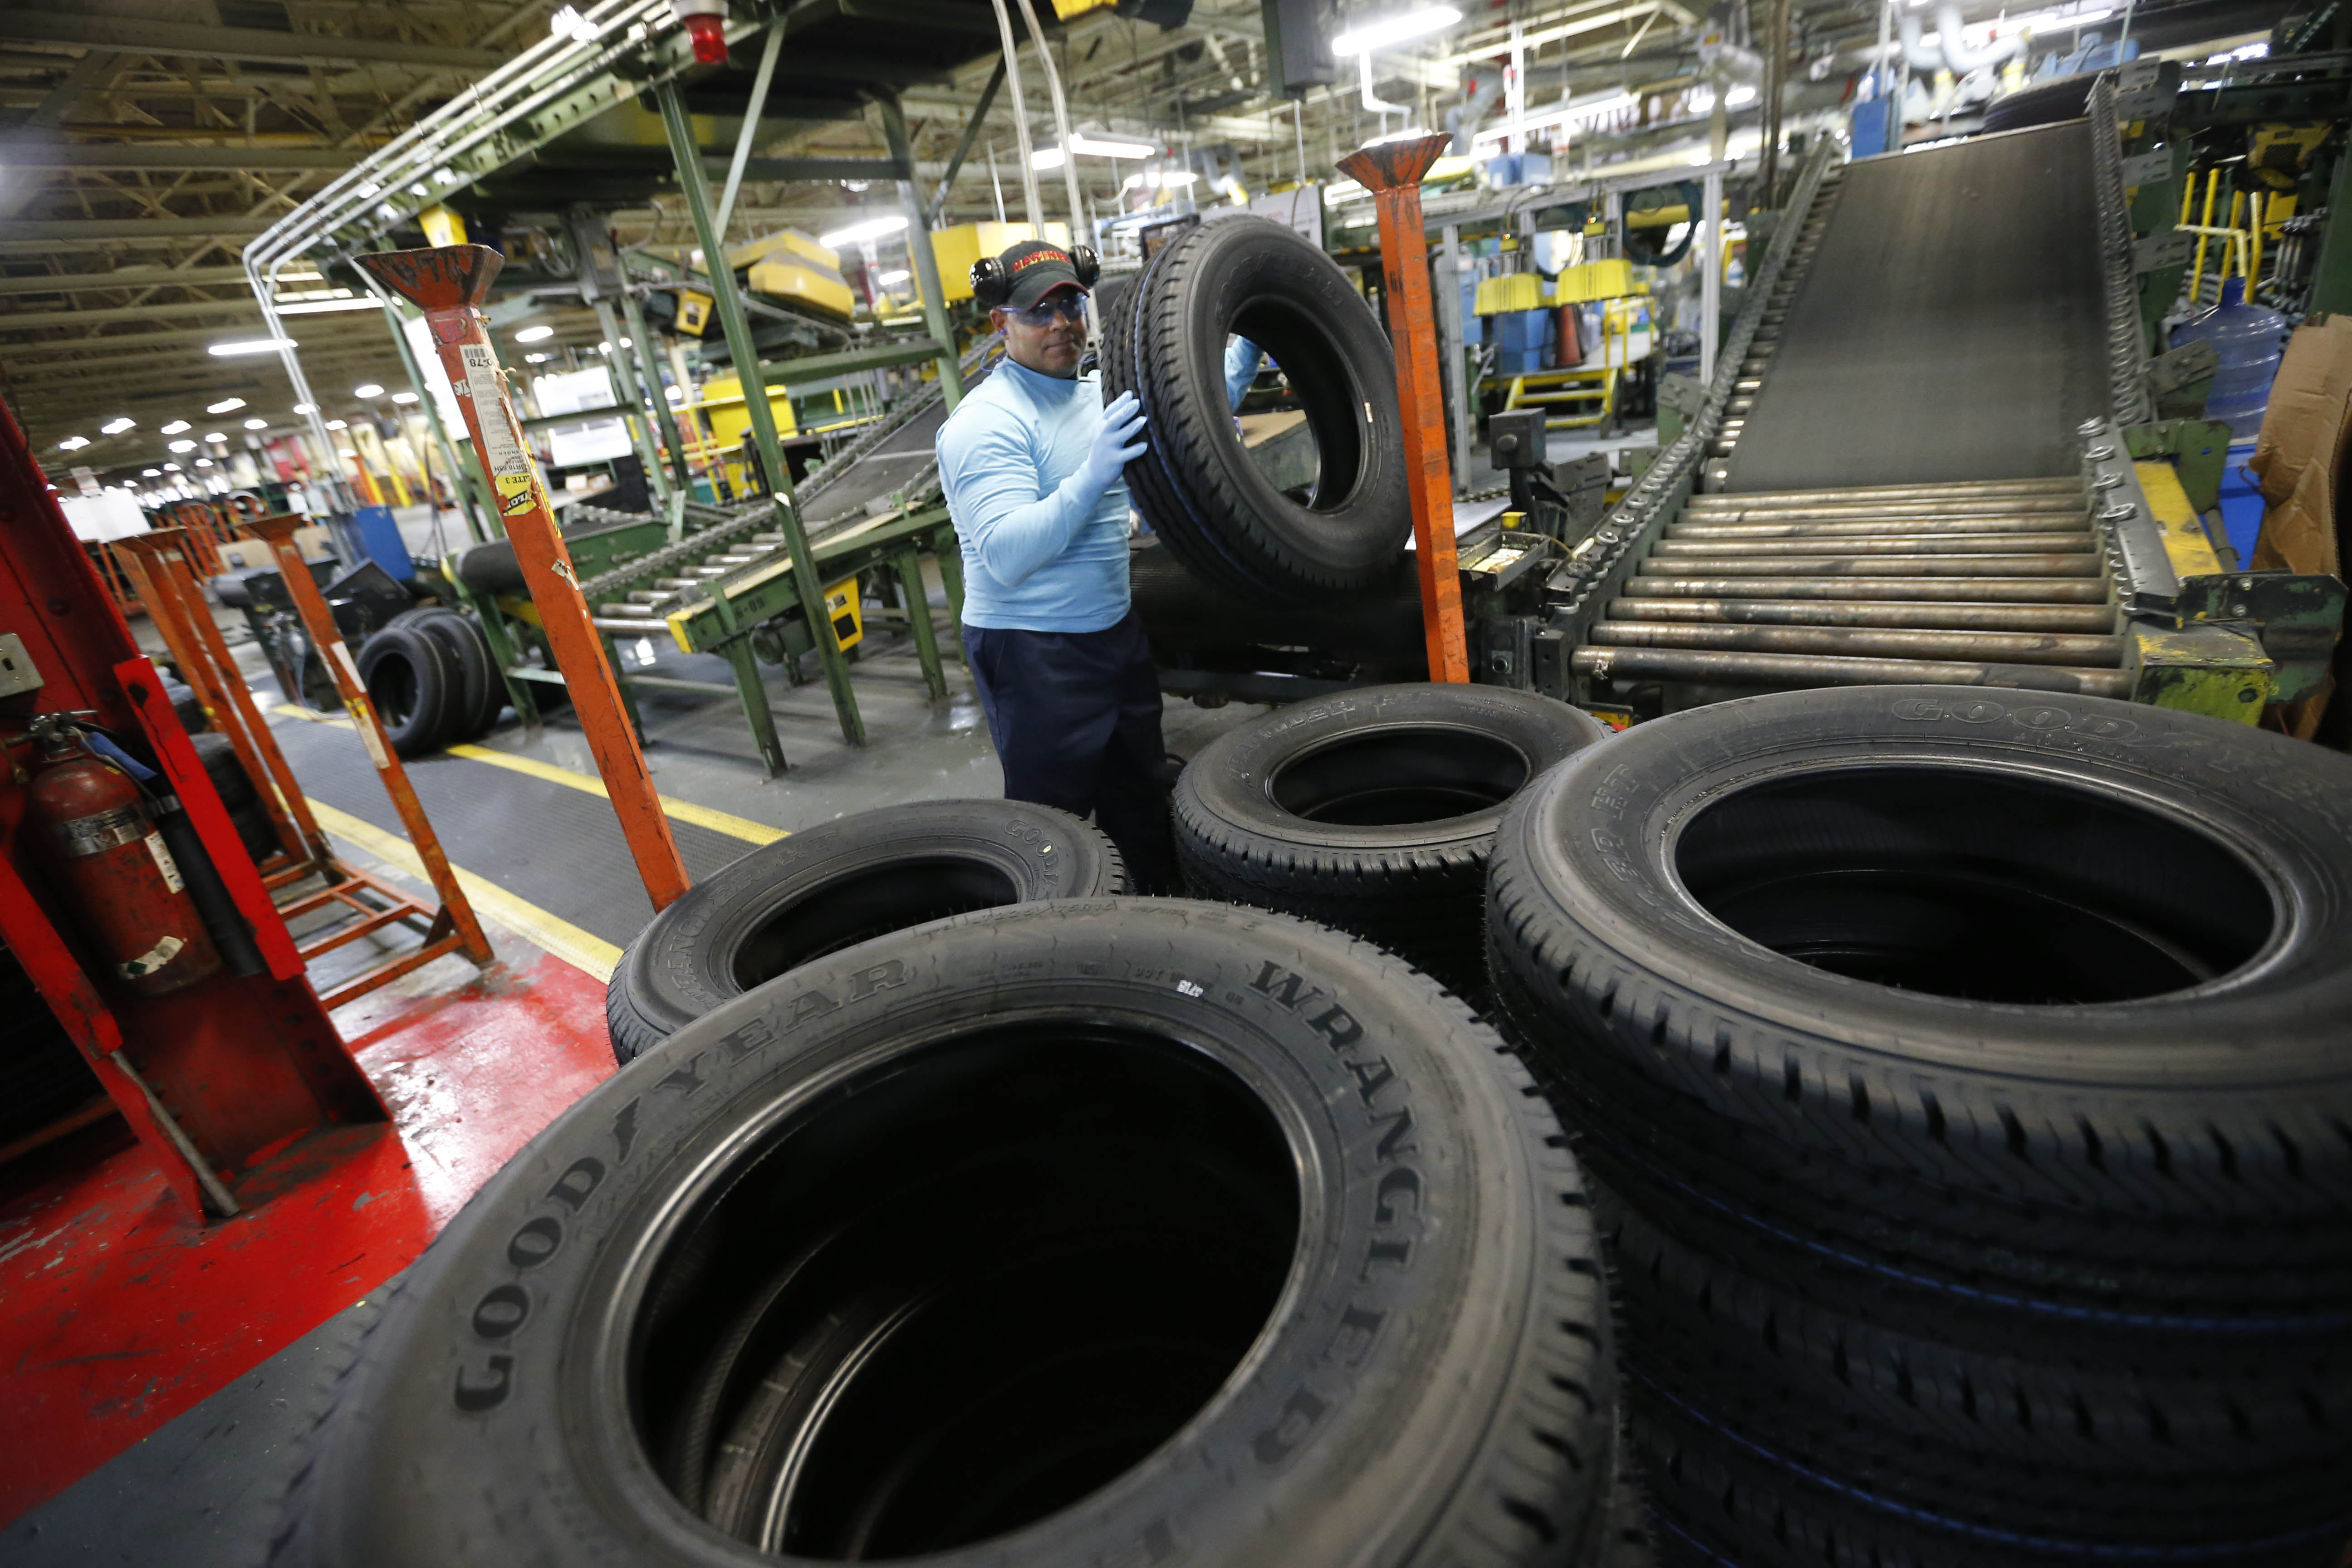 A worker on the curing line of Sumitomo Rubber USA's Town of Tonawanda plant, where the company will invest $87 million this year after reclaiming full ownership. (Derek Gee/Buffalo News)